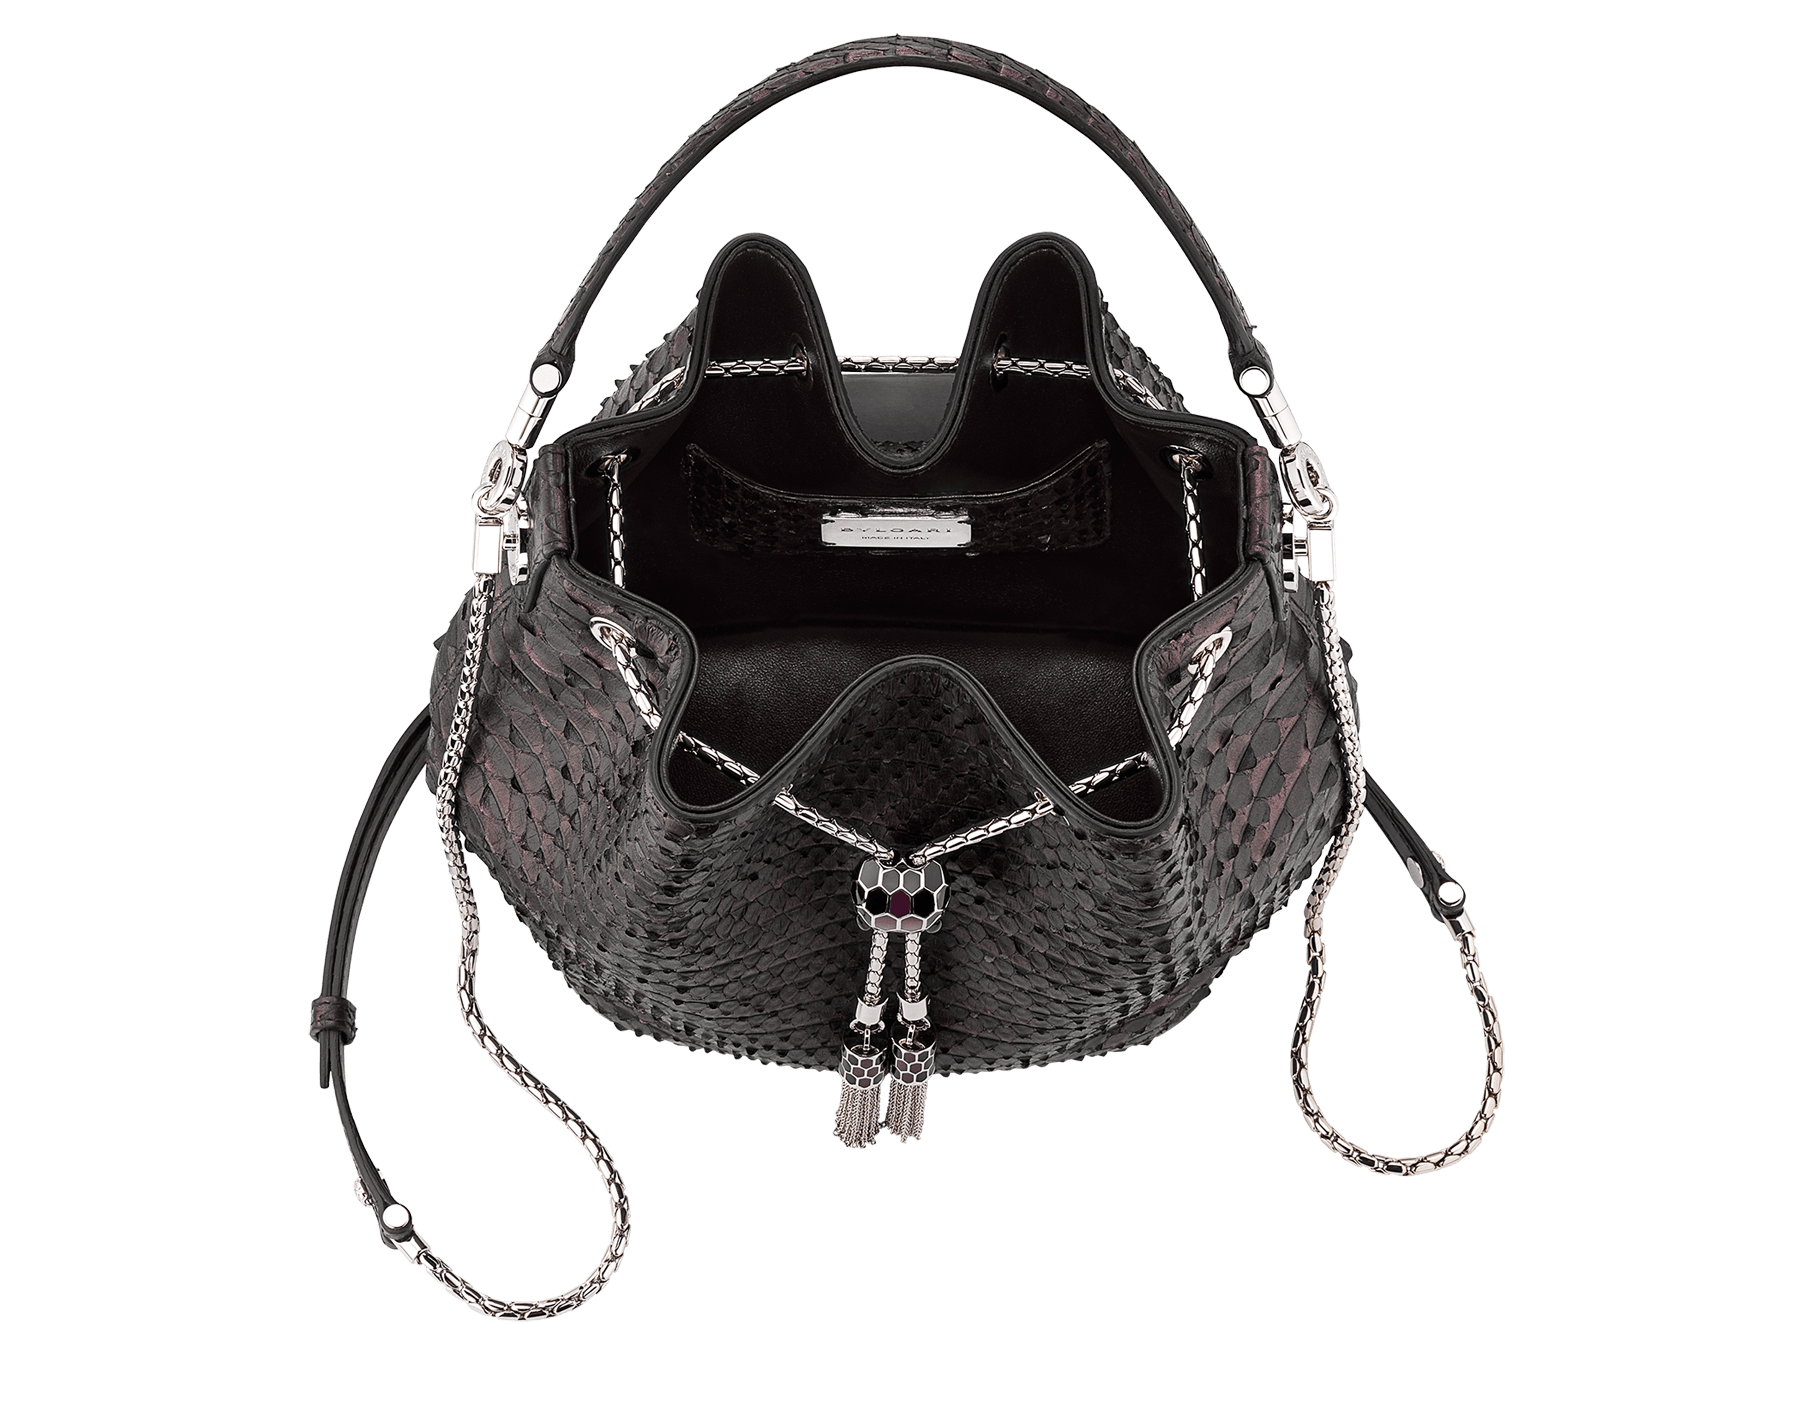 Bucket Serpenti Forever in plum amethyst Plissé python skin and black nappa internal lining. Hardware in light gold plated brass and snakehead closure in black and plum amethyst enamel, with eyes in black onyx. 934-PP image 4